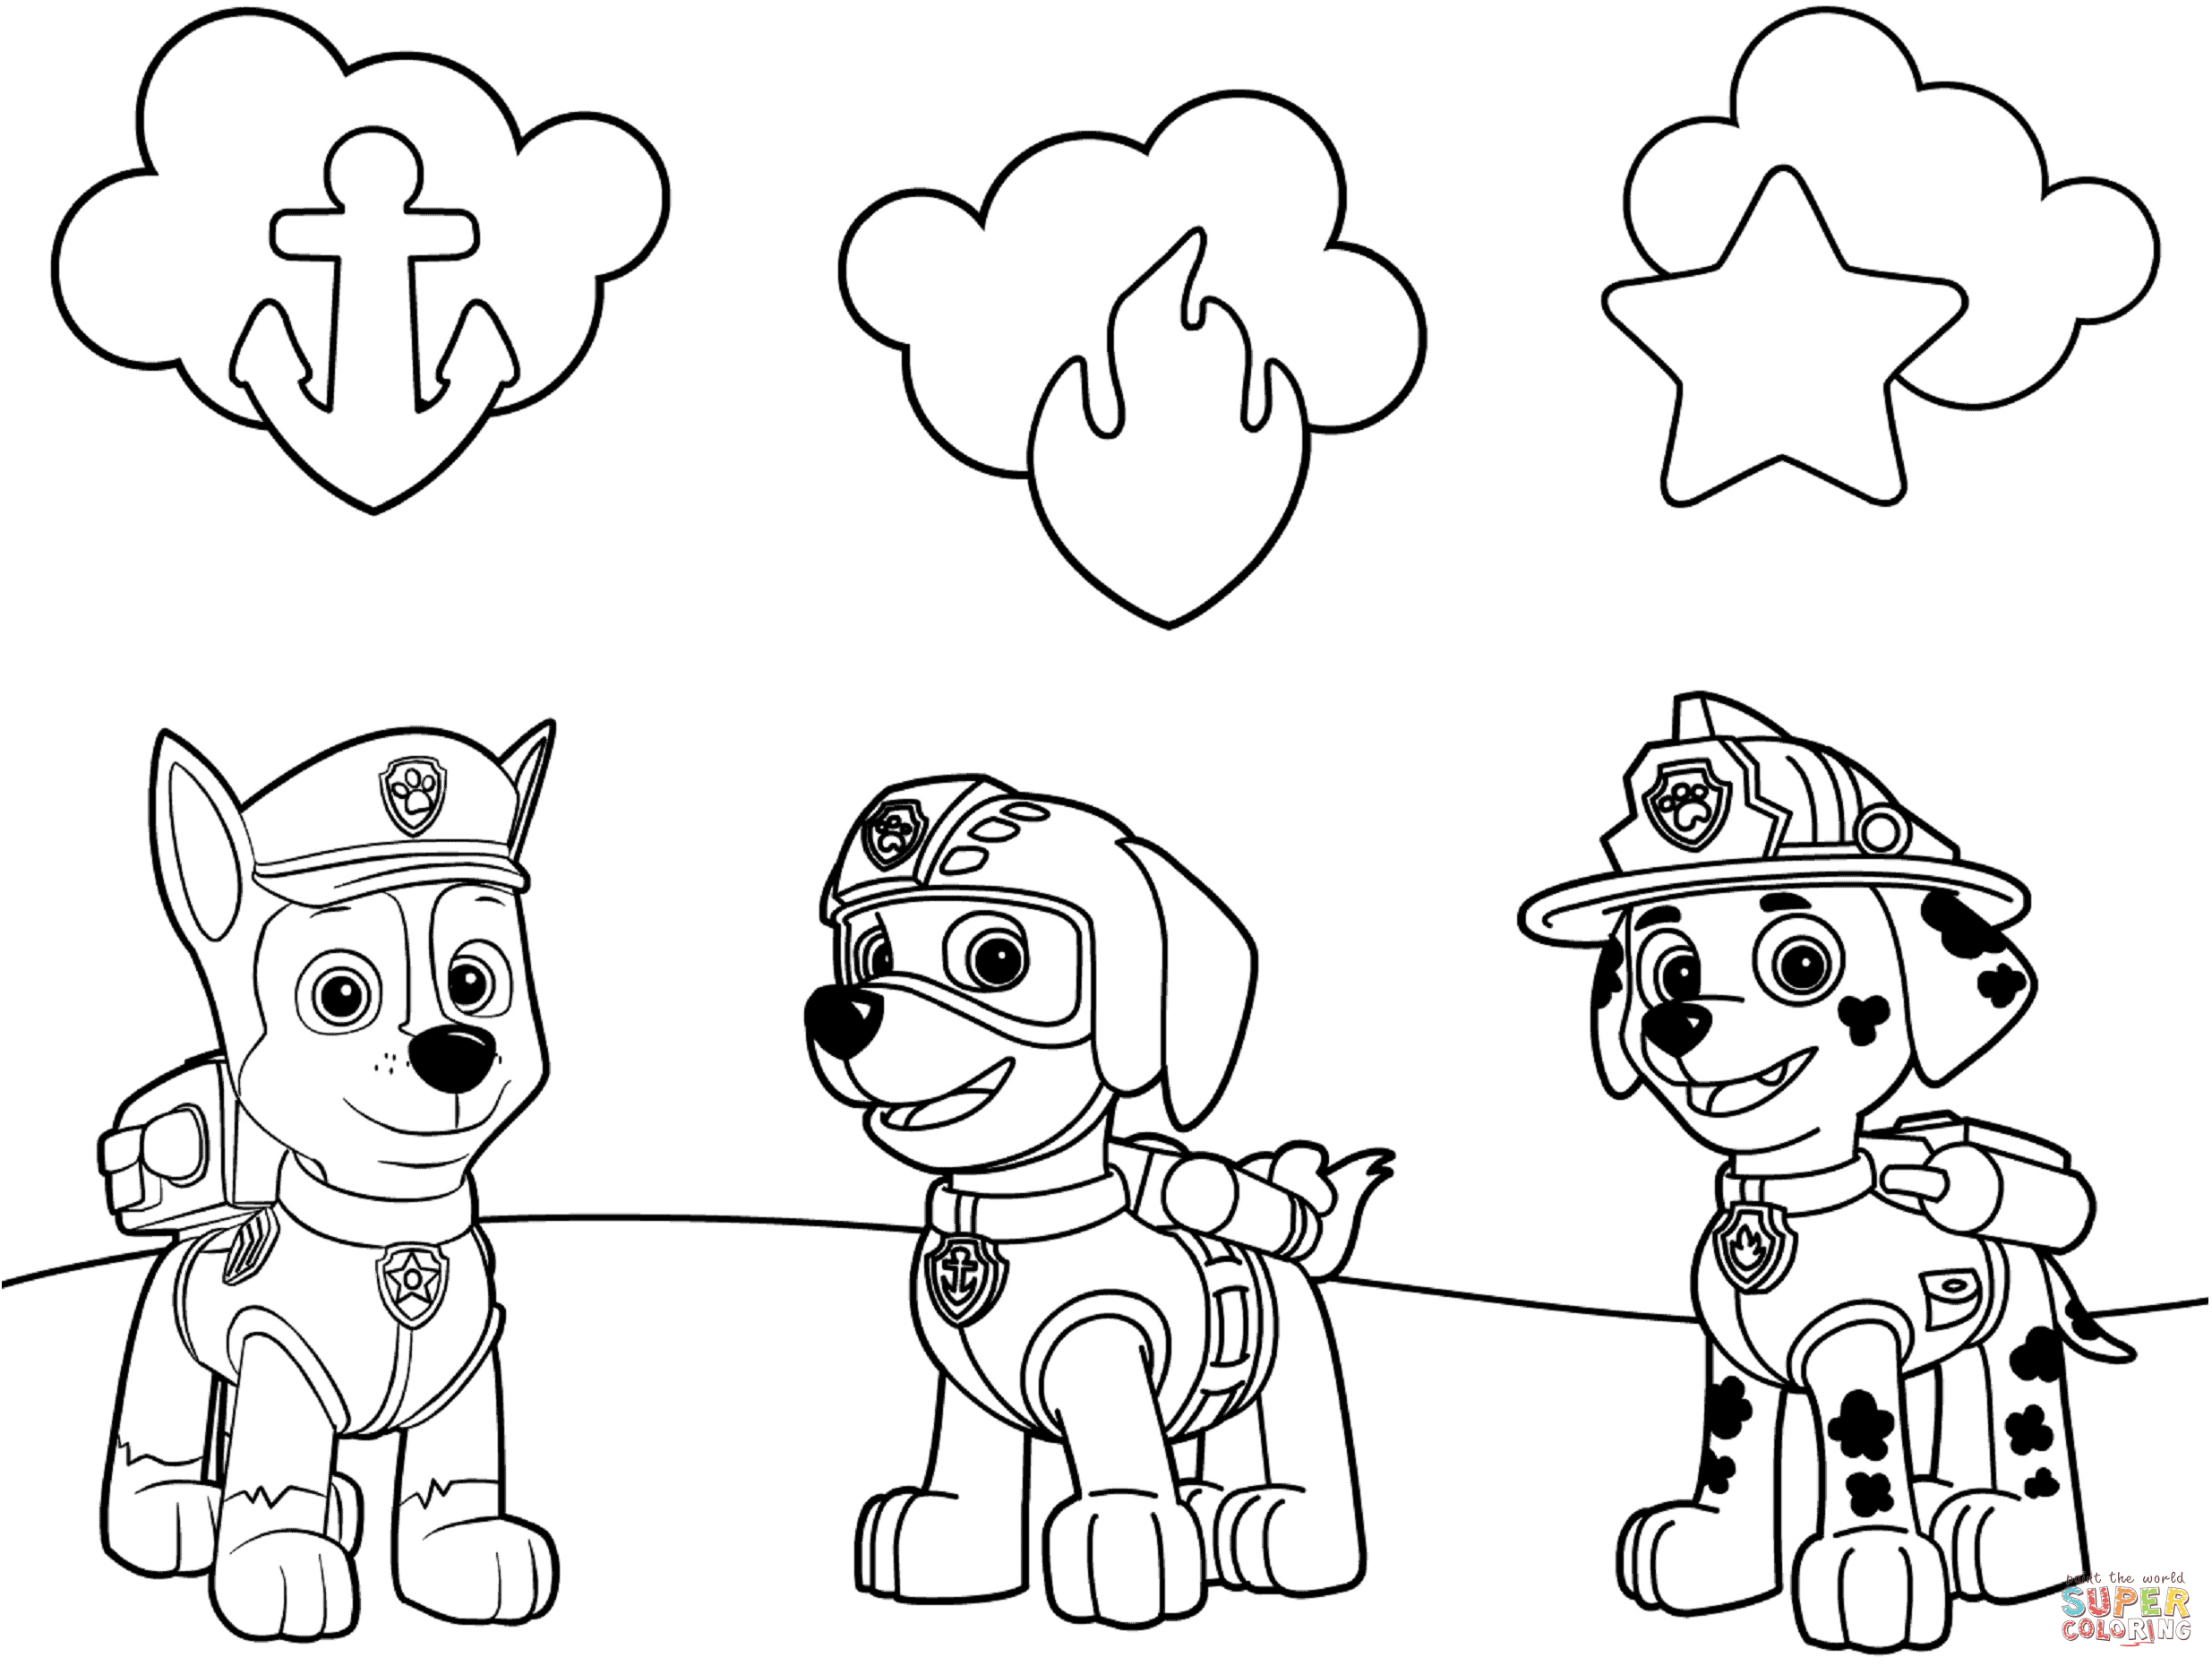 Paw Patrol Badges Coloring Page Free Printable Coloring Pages Paw Patrol Coloring Pages Paw Patrol Printables Paw Patrol Coloring